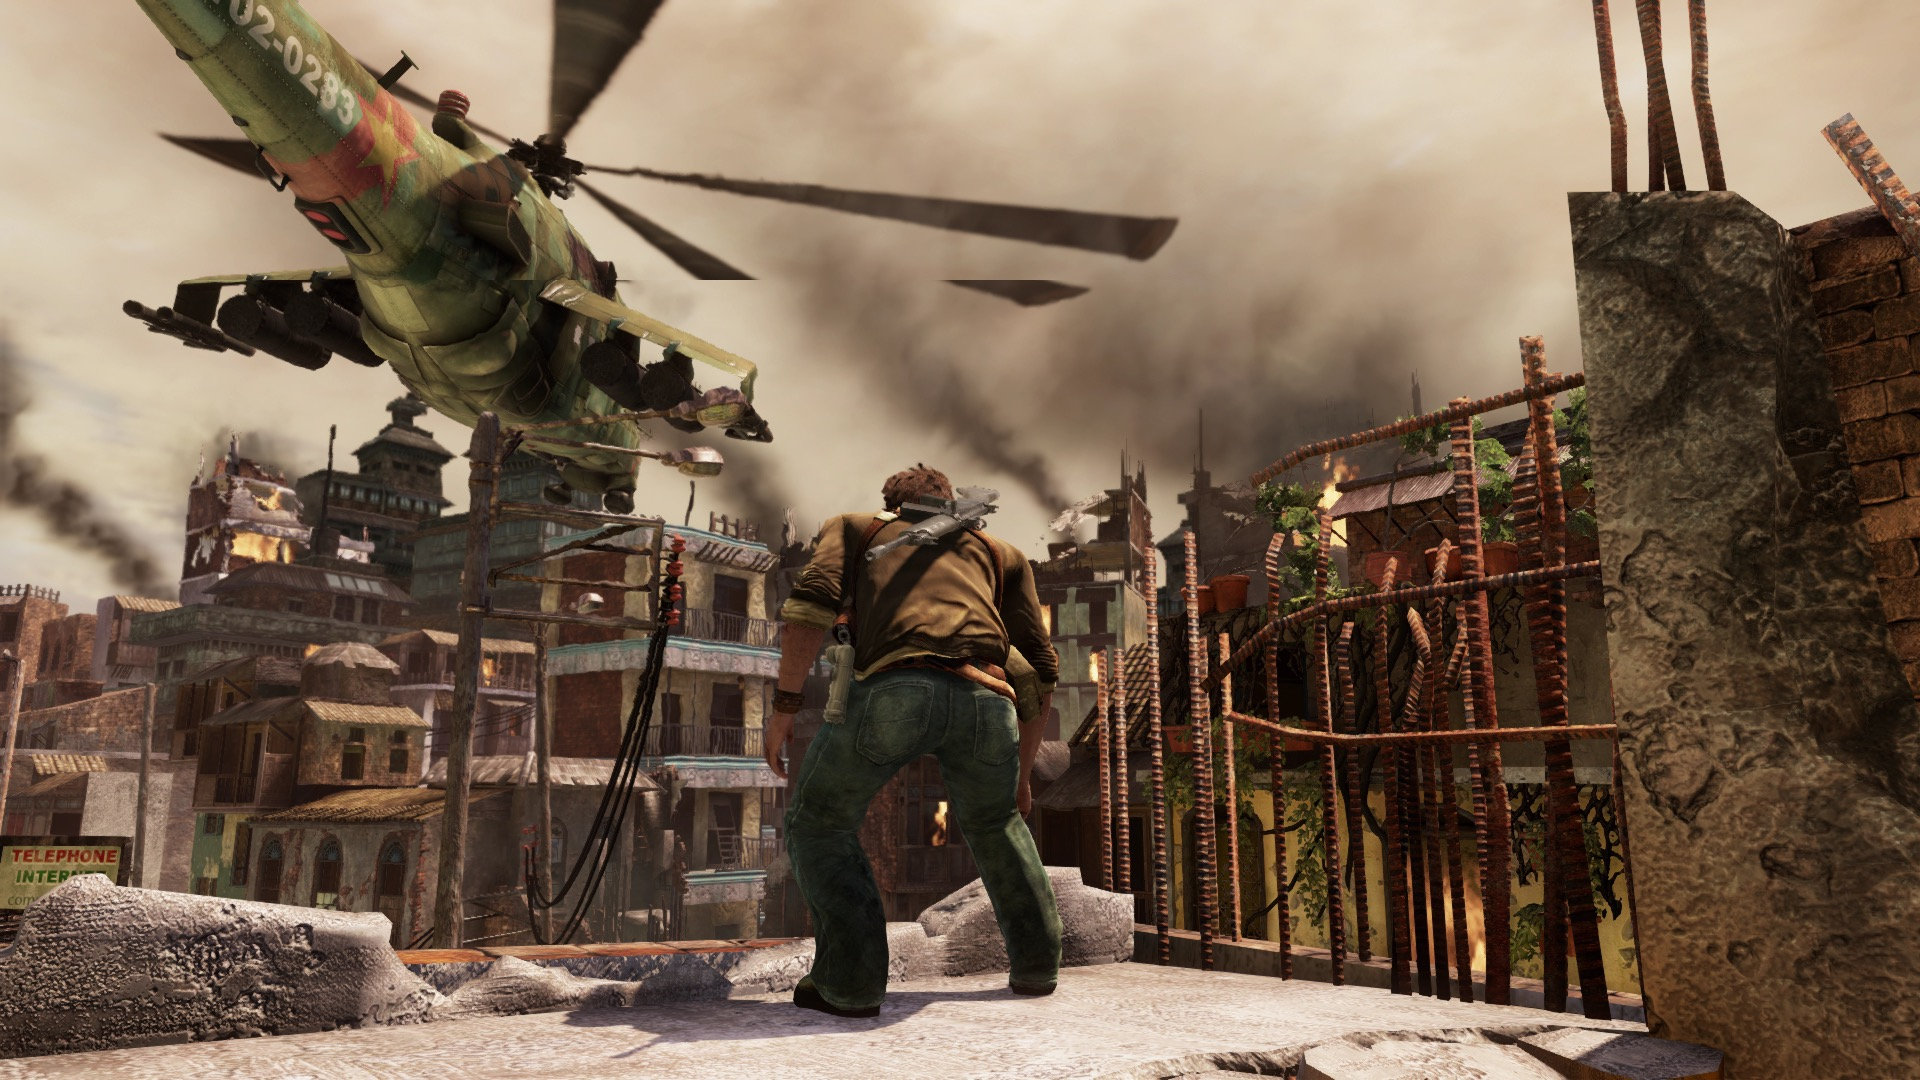 Uncharted 2: Among Thieves 'The Dig' treasure locations